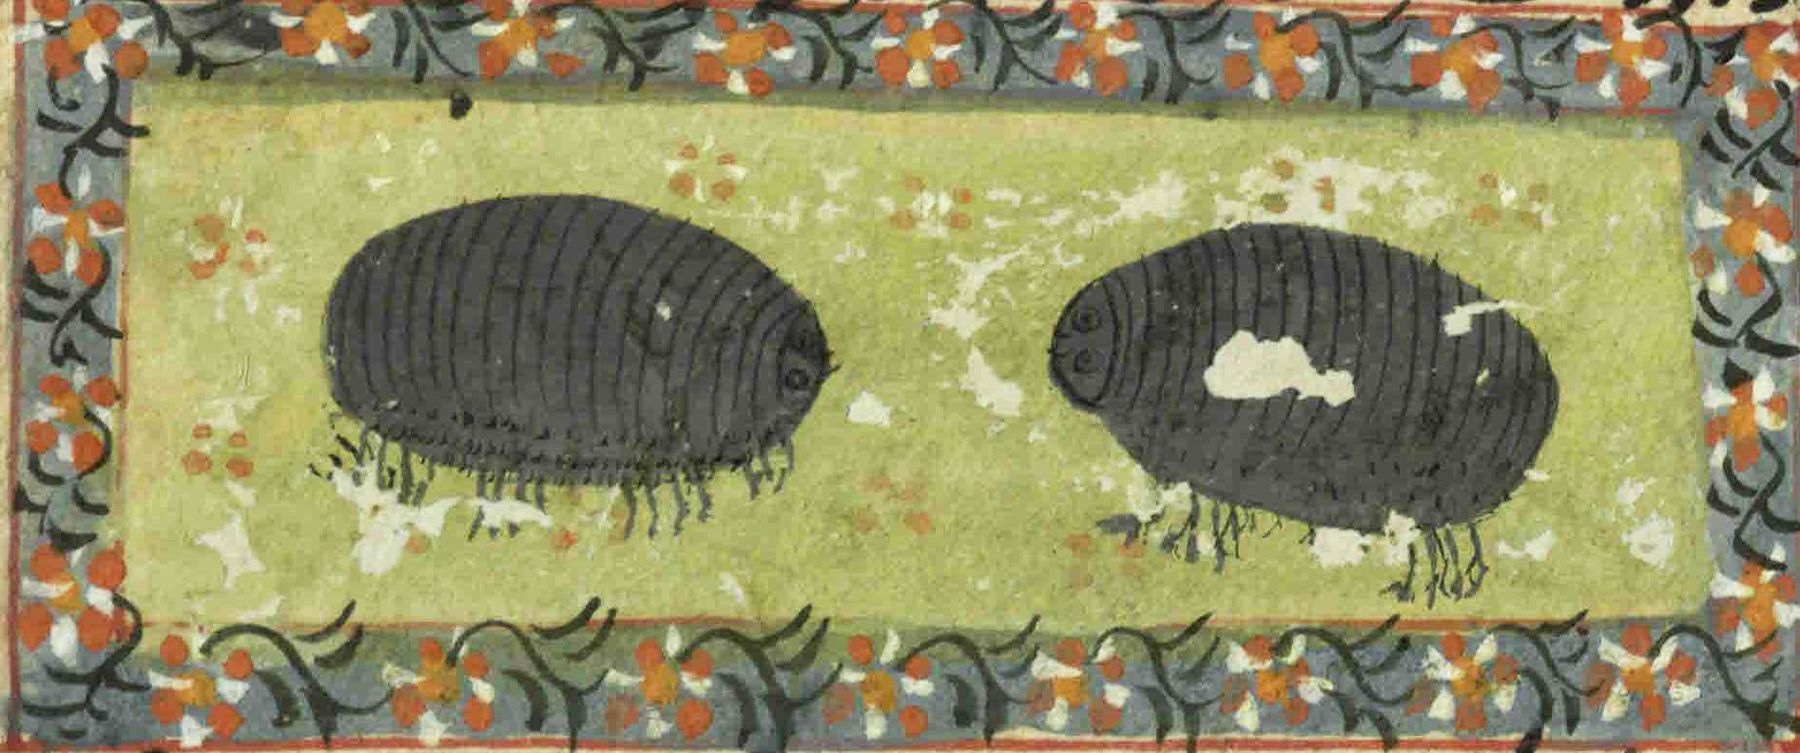 """Woodlice from """"The Book of Wonders of the Age"""" (St Andrews ms32(o))"""